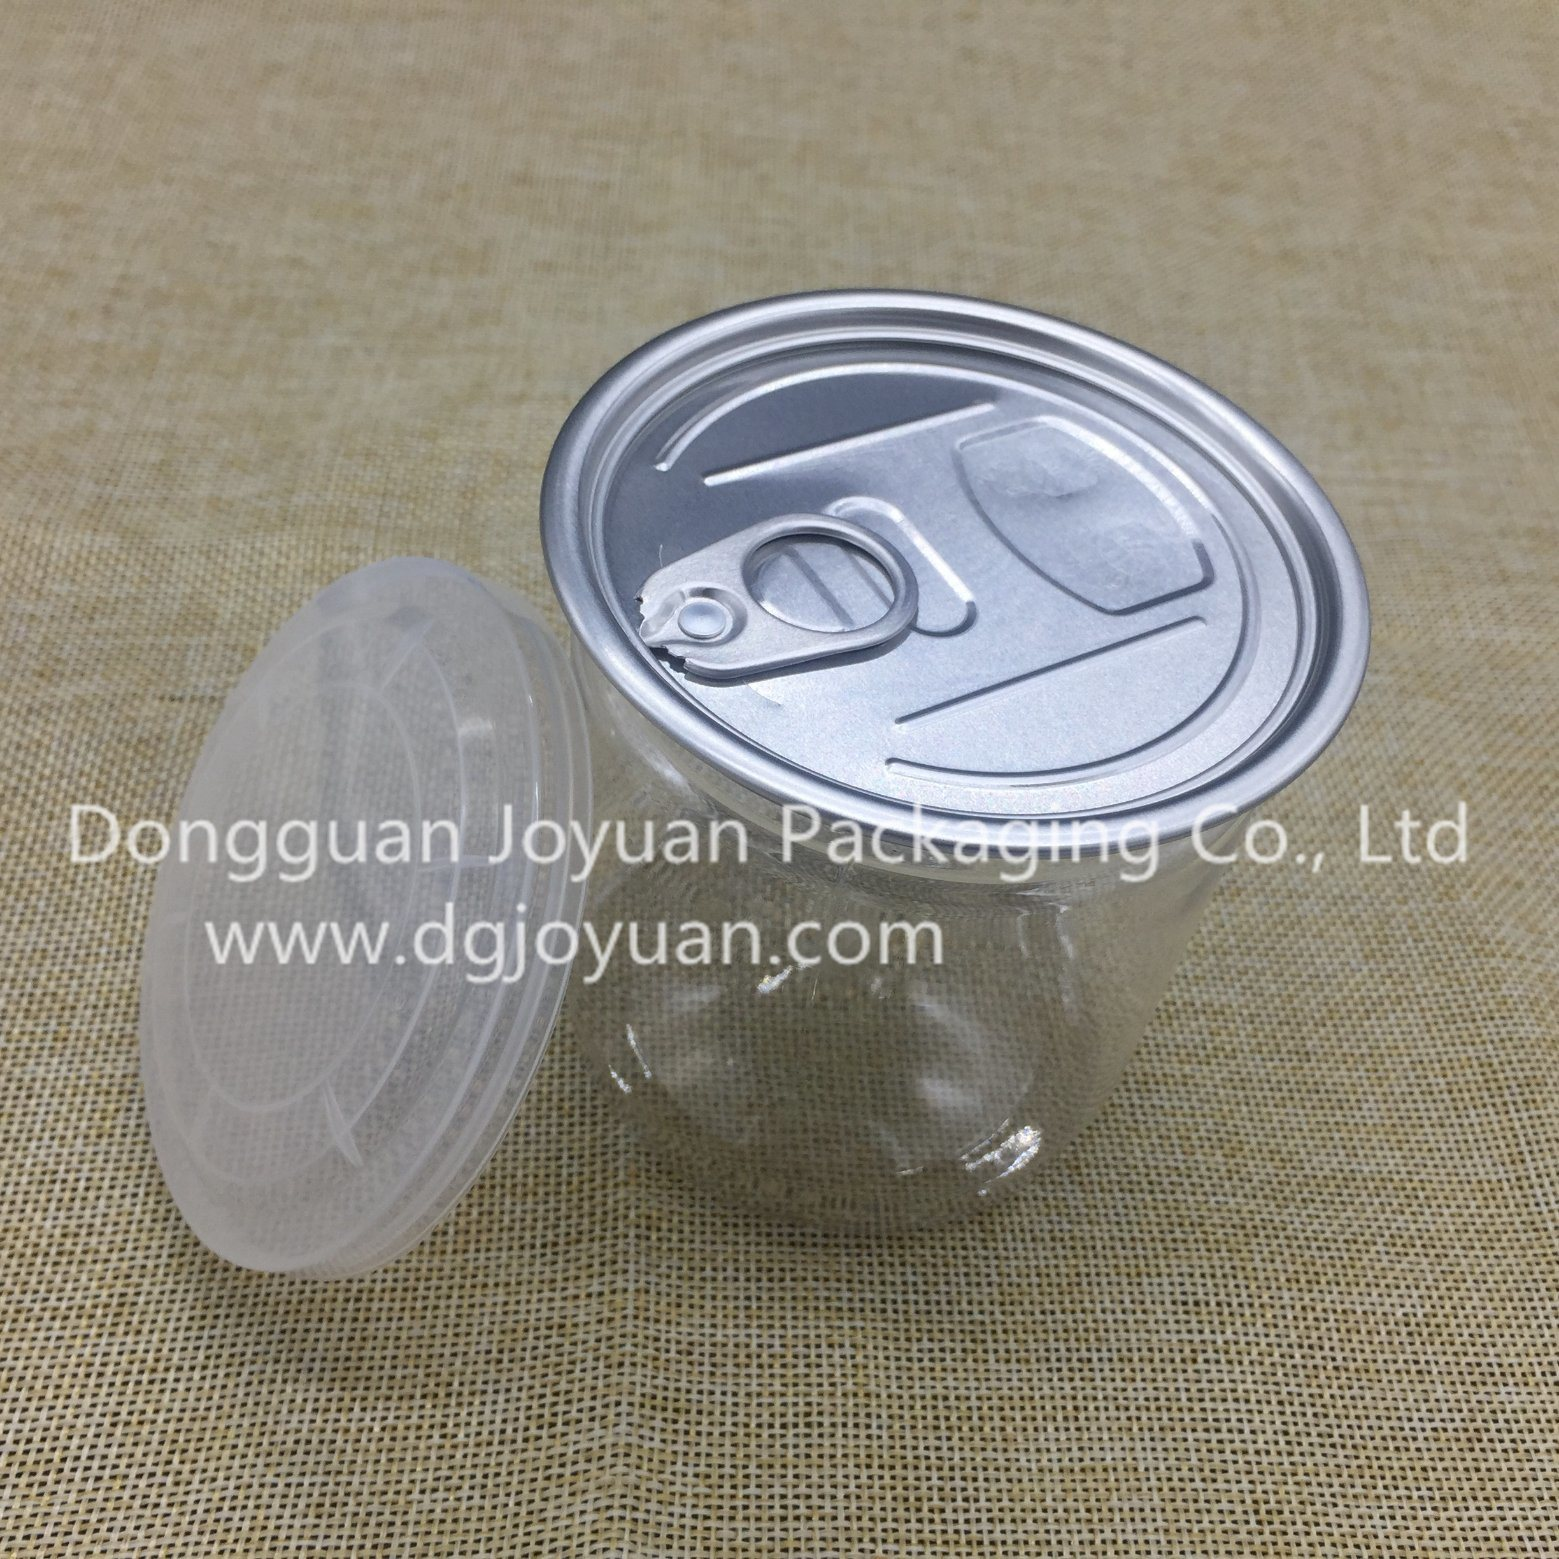 Plastic Pet Container with Aluminum Easy Open End